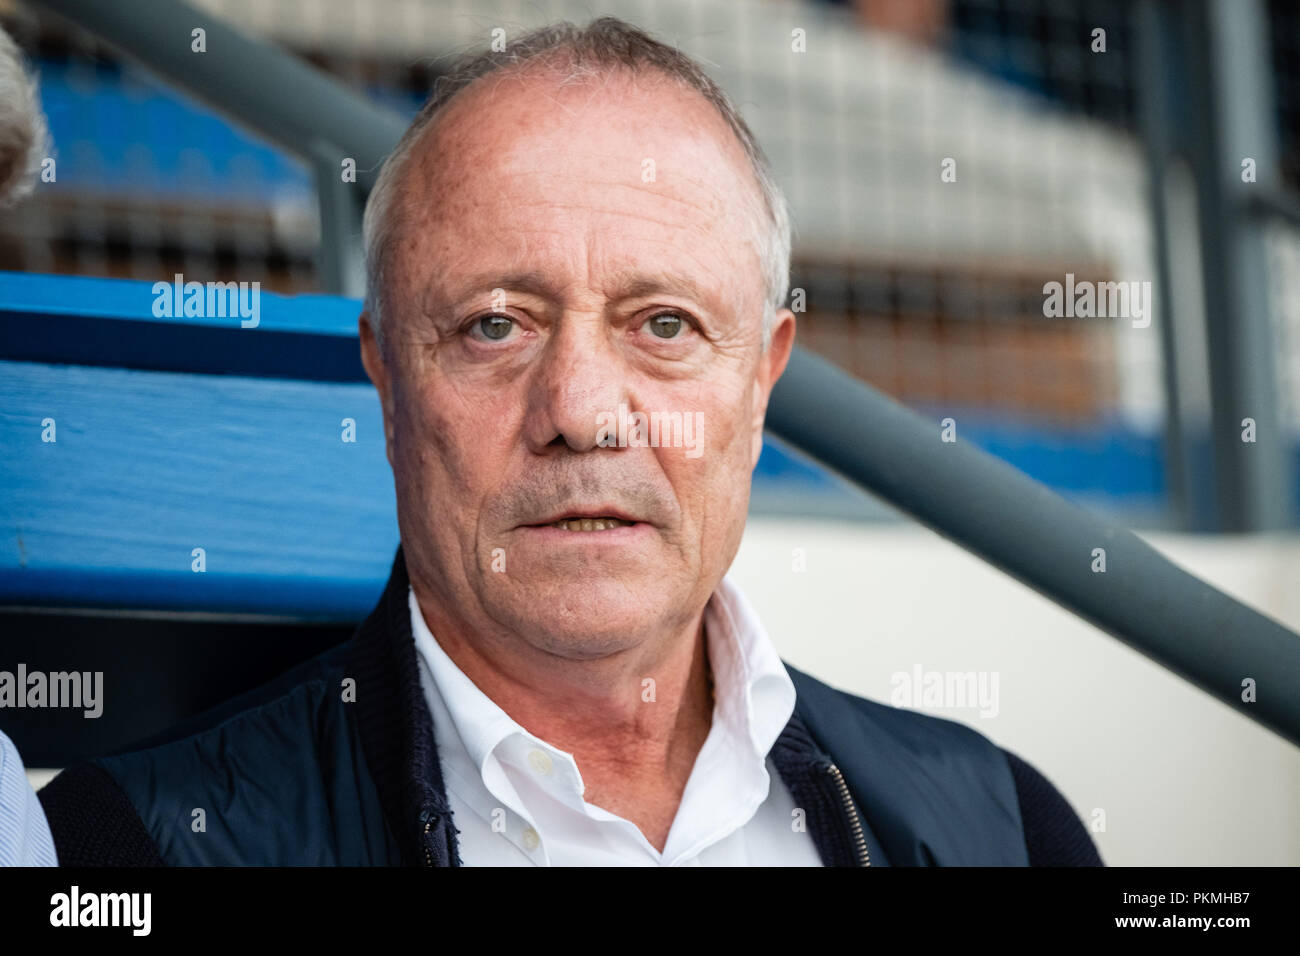 France. September 07, 2018. Bernard Lacombe is a former French football international. Olympique Lyonnais player, he also played in Bordeaux and St Et - Stock Image